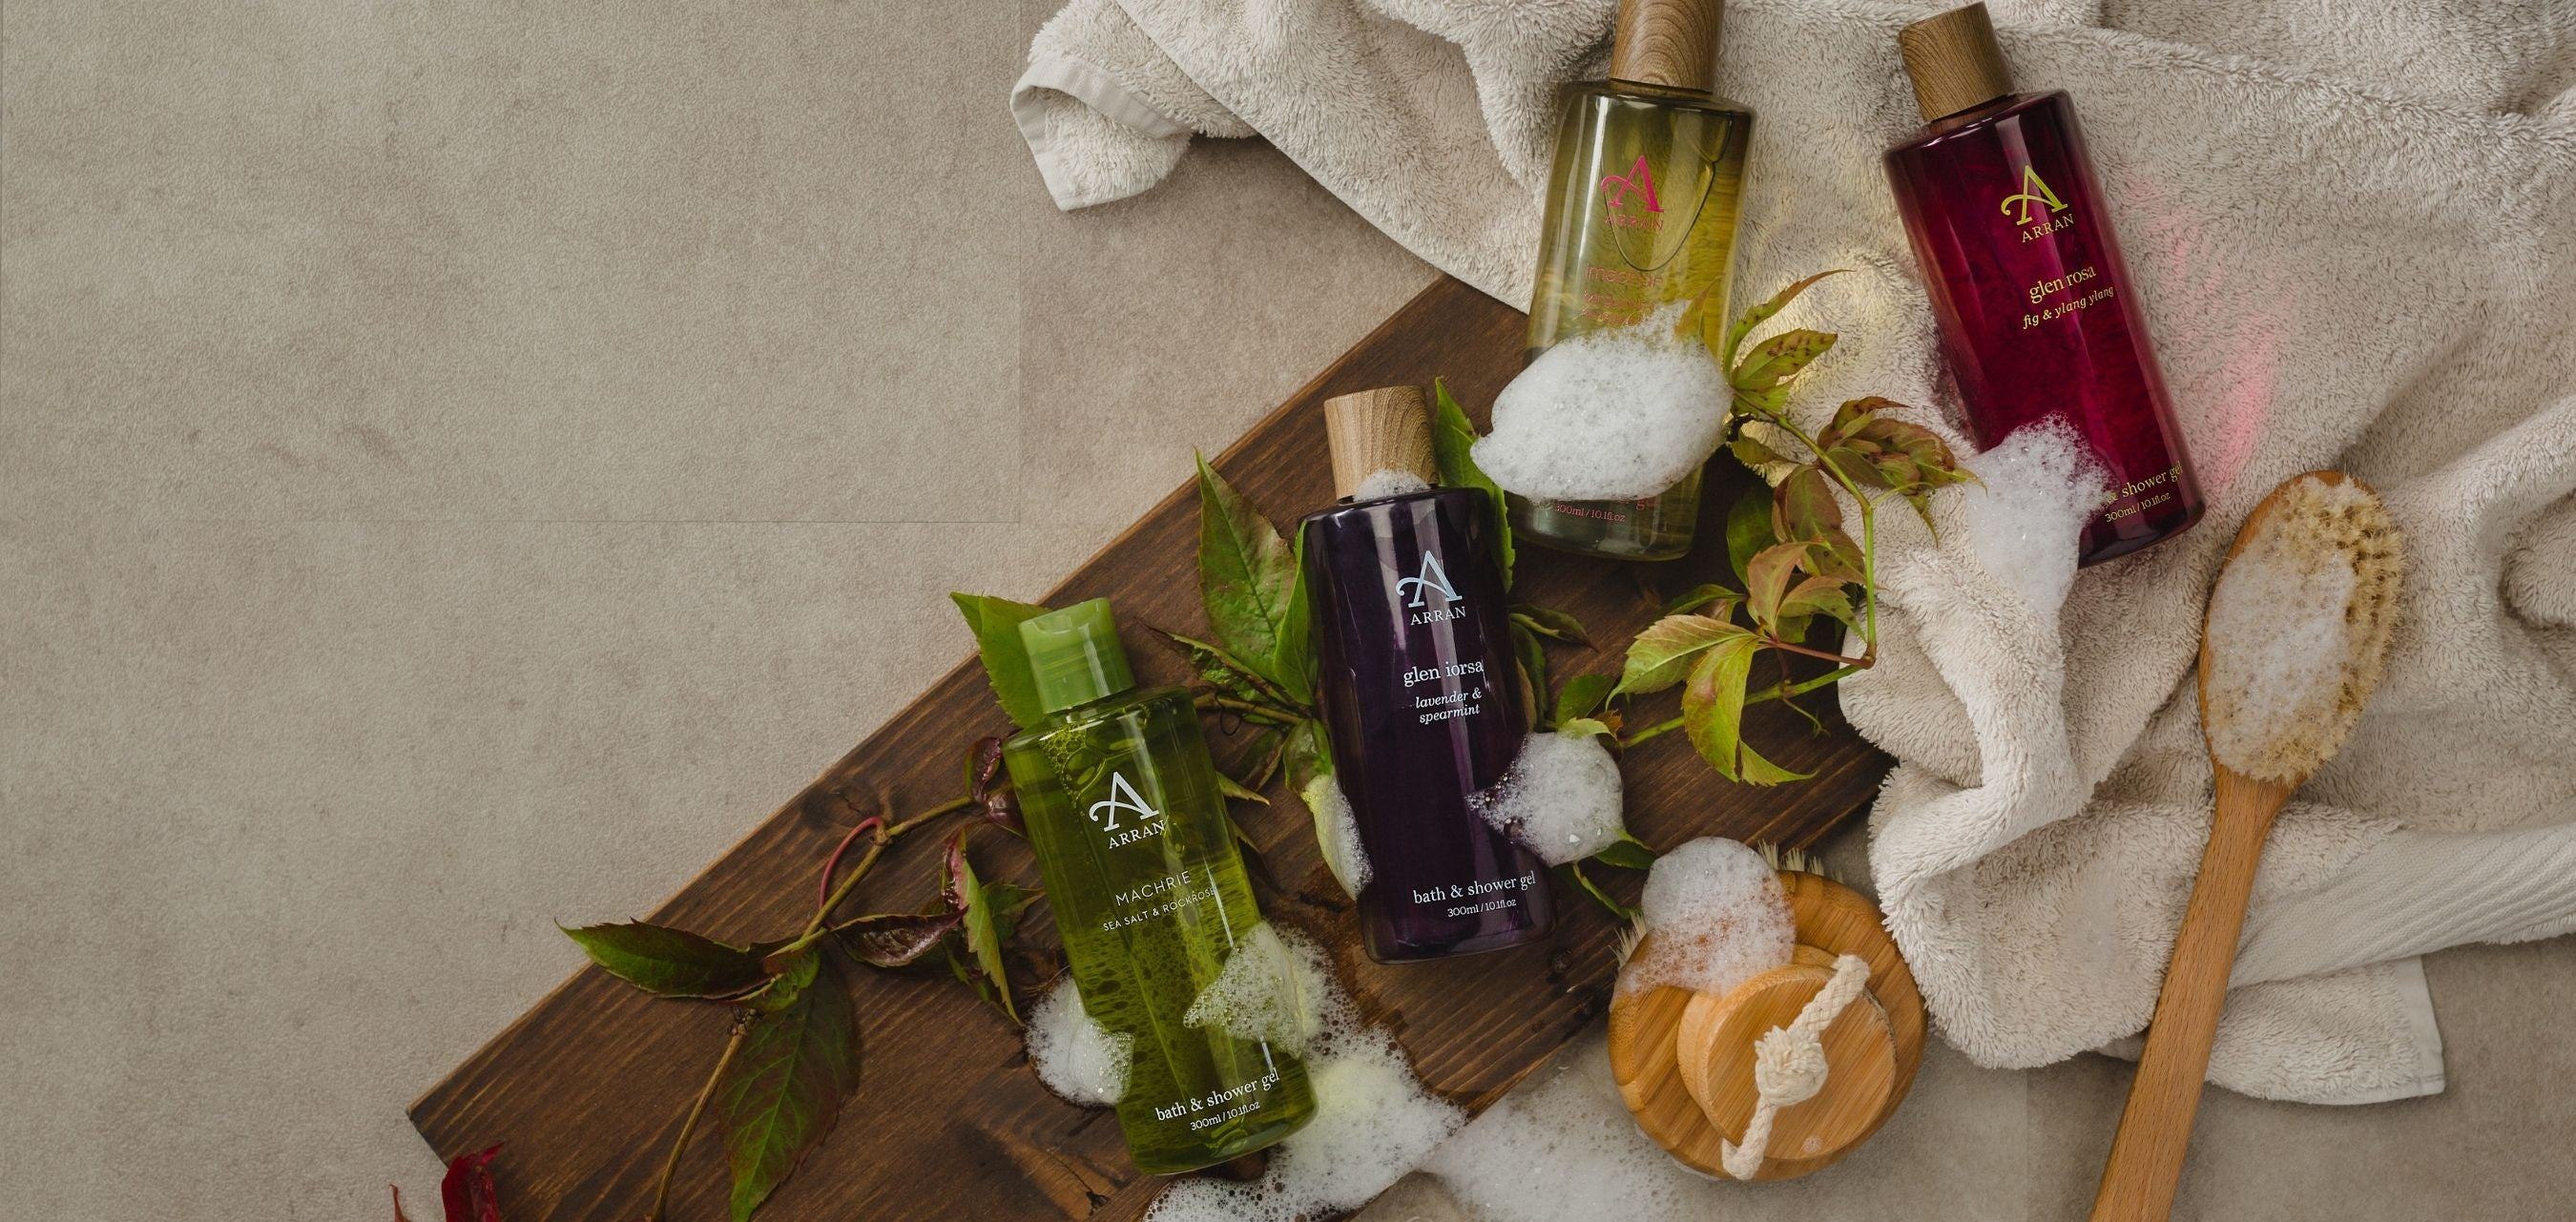 Four shower gels placed on dark wooden plank with light pink towel and body brush.